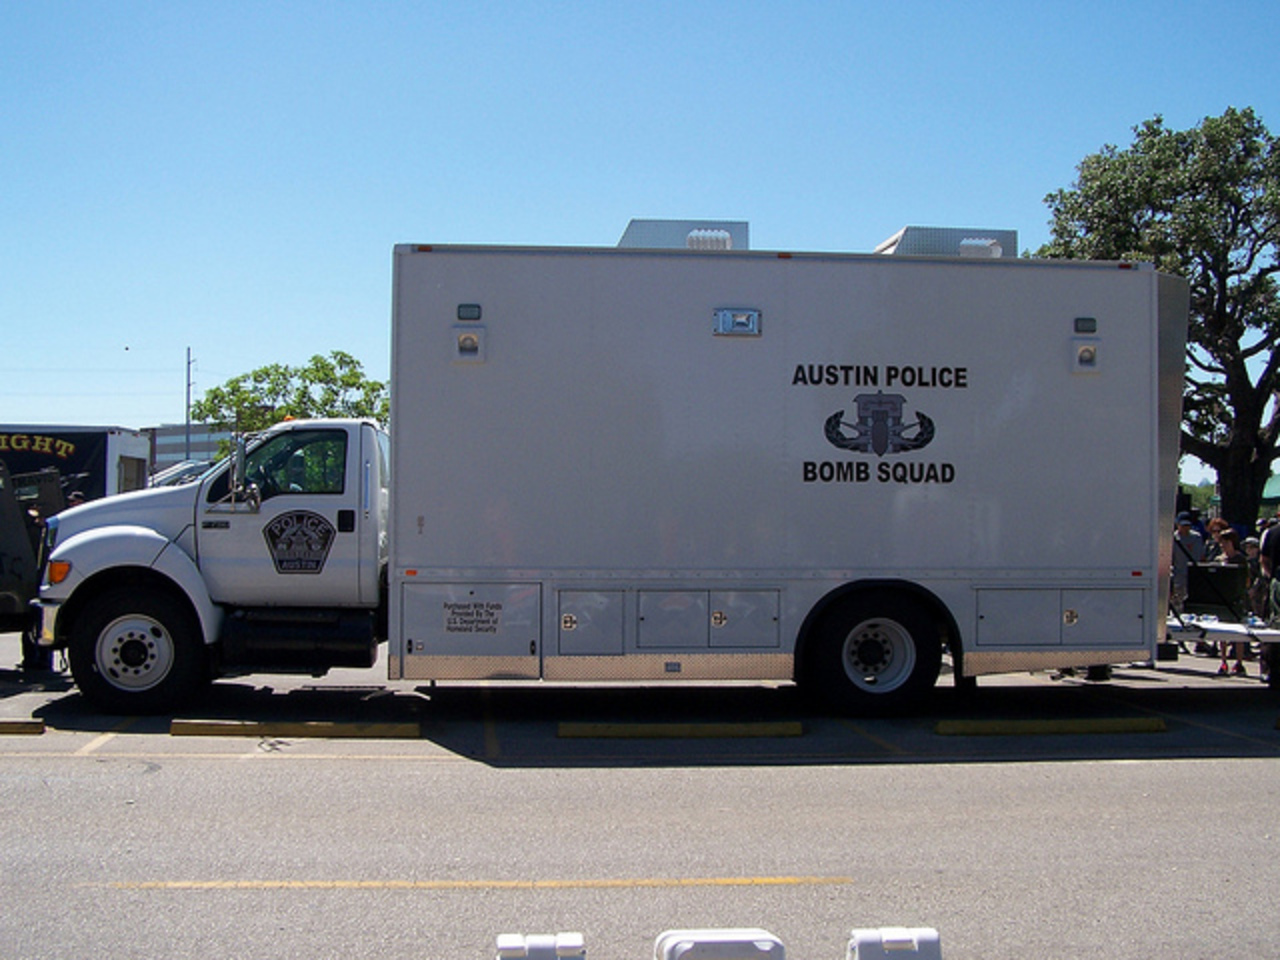 Austin, TX Police Bomb Squad Ford F-750 | Flickr - Photo Sharing!